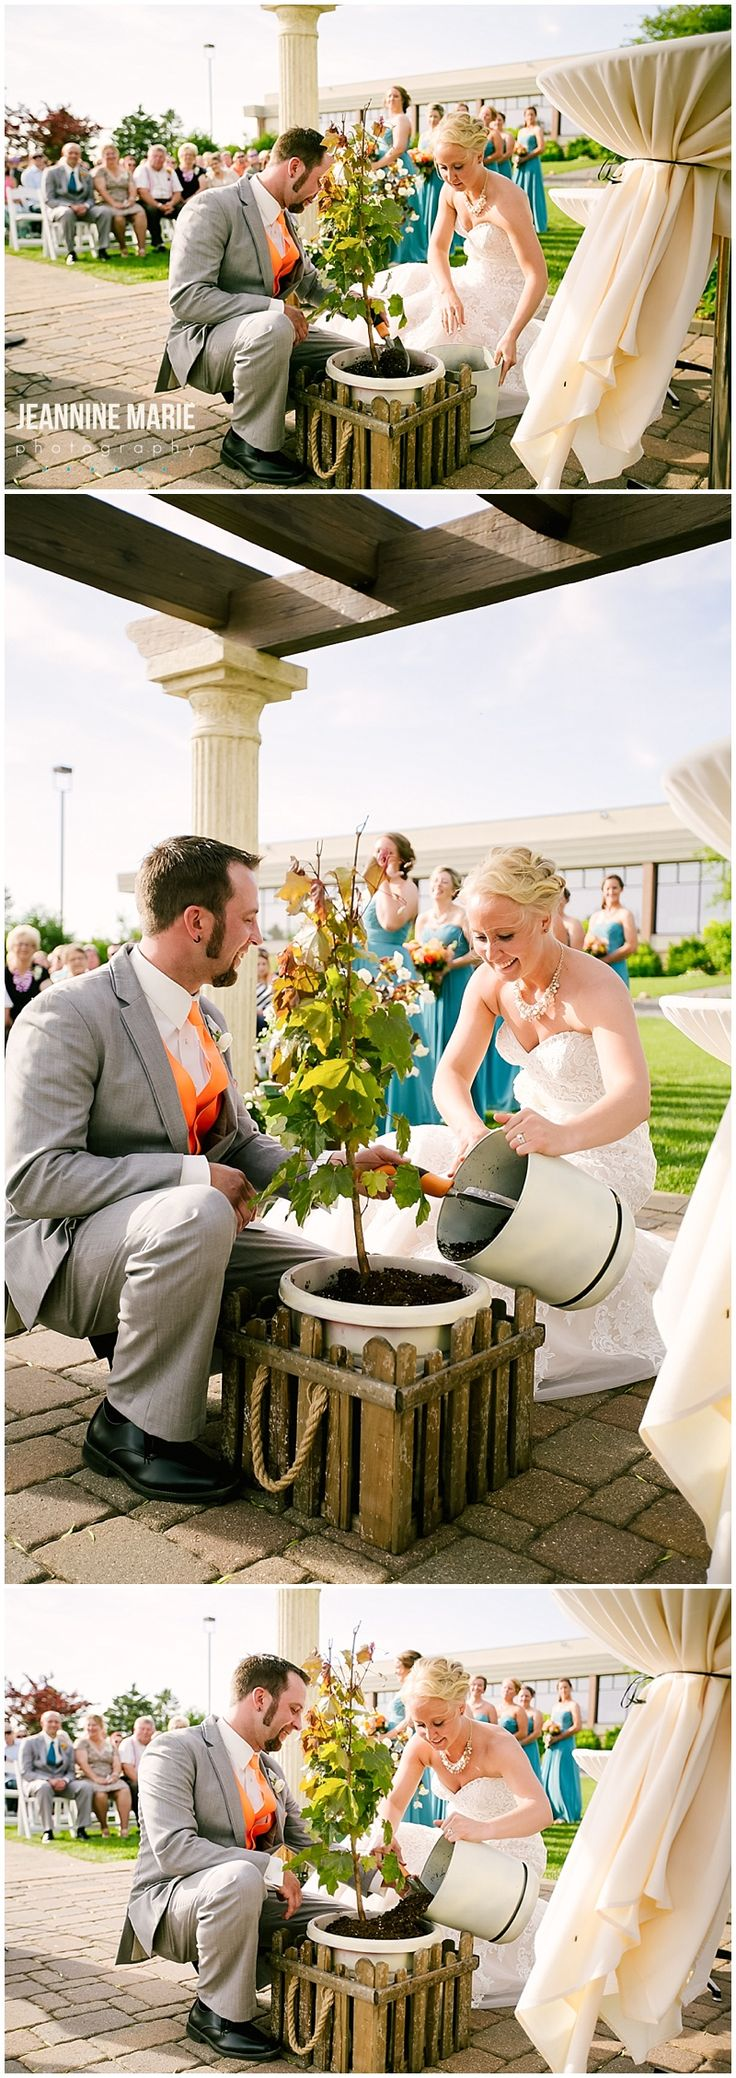 Unique alternative to a unity candle ceremony or sand ceremony; instead, plant a tree! Use soil from two different places (ex: the bride's childhood home and the groom's childhood home) and mix the soil together and plant a tree in a pot at the ceremony! Such a neat alternative!